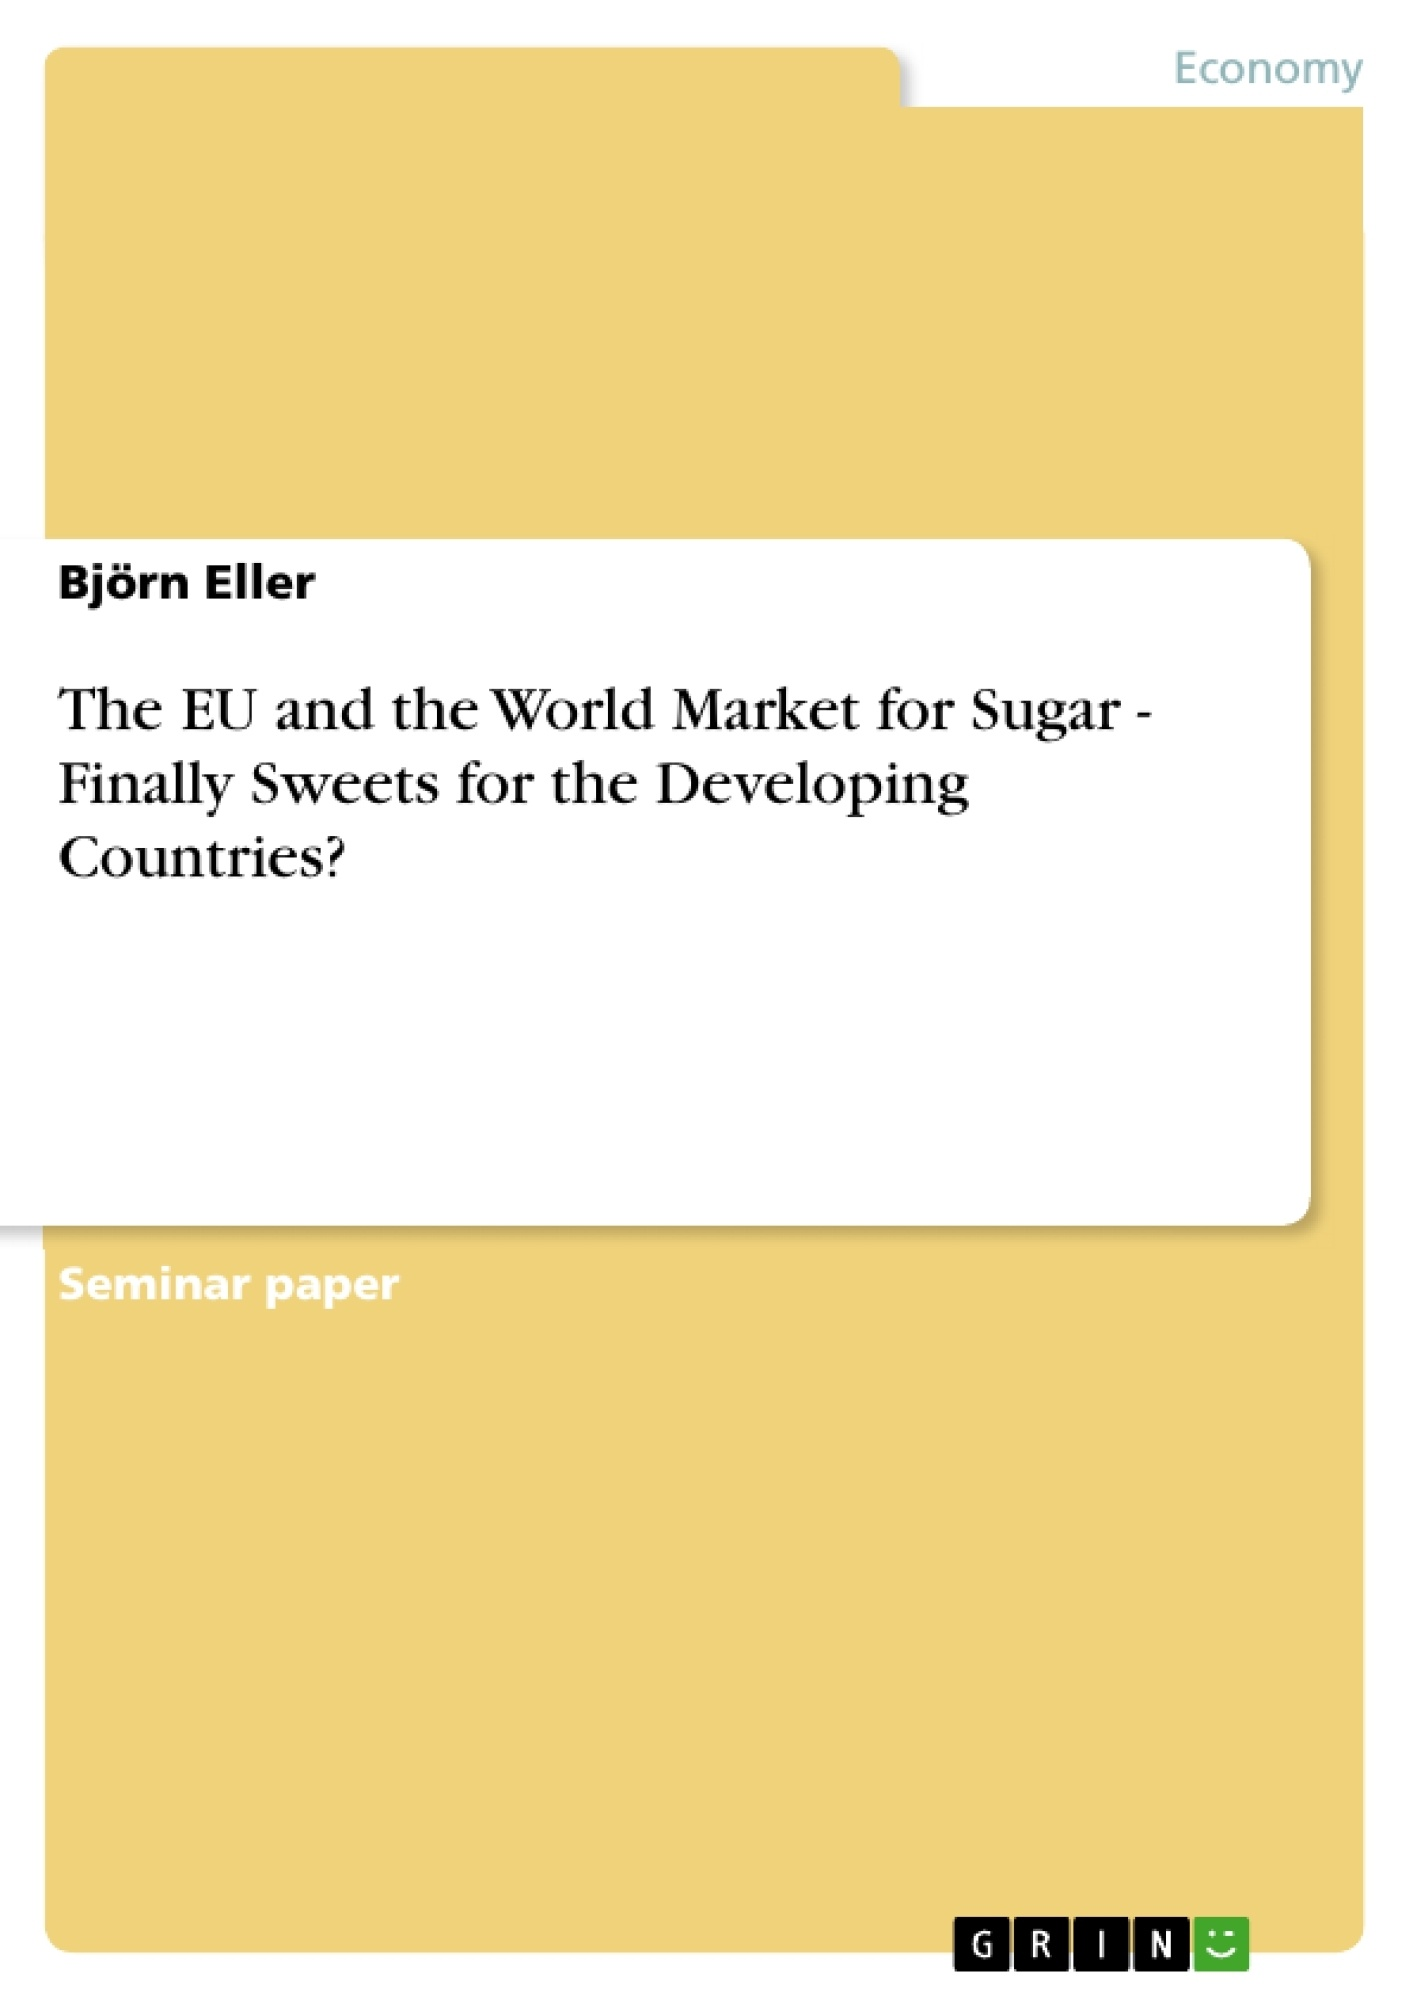 Title: The EU and the World Market for Sugar - Finally Sweets for the Developing Countries?